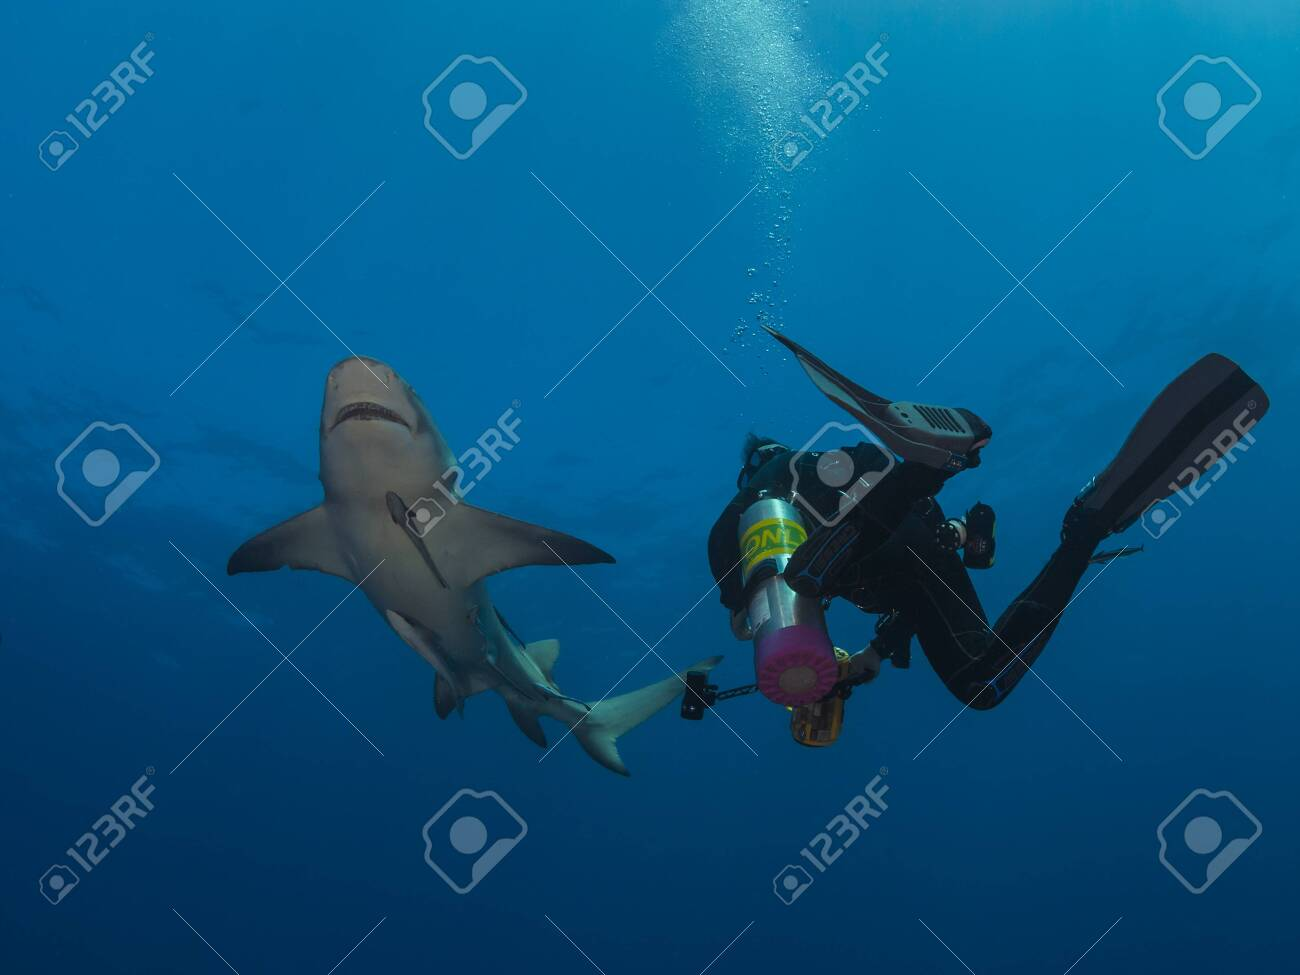 Danderous shark swim throw the crystal clear water with sun on background and moving around diver - 140952842